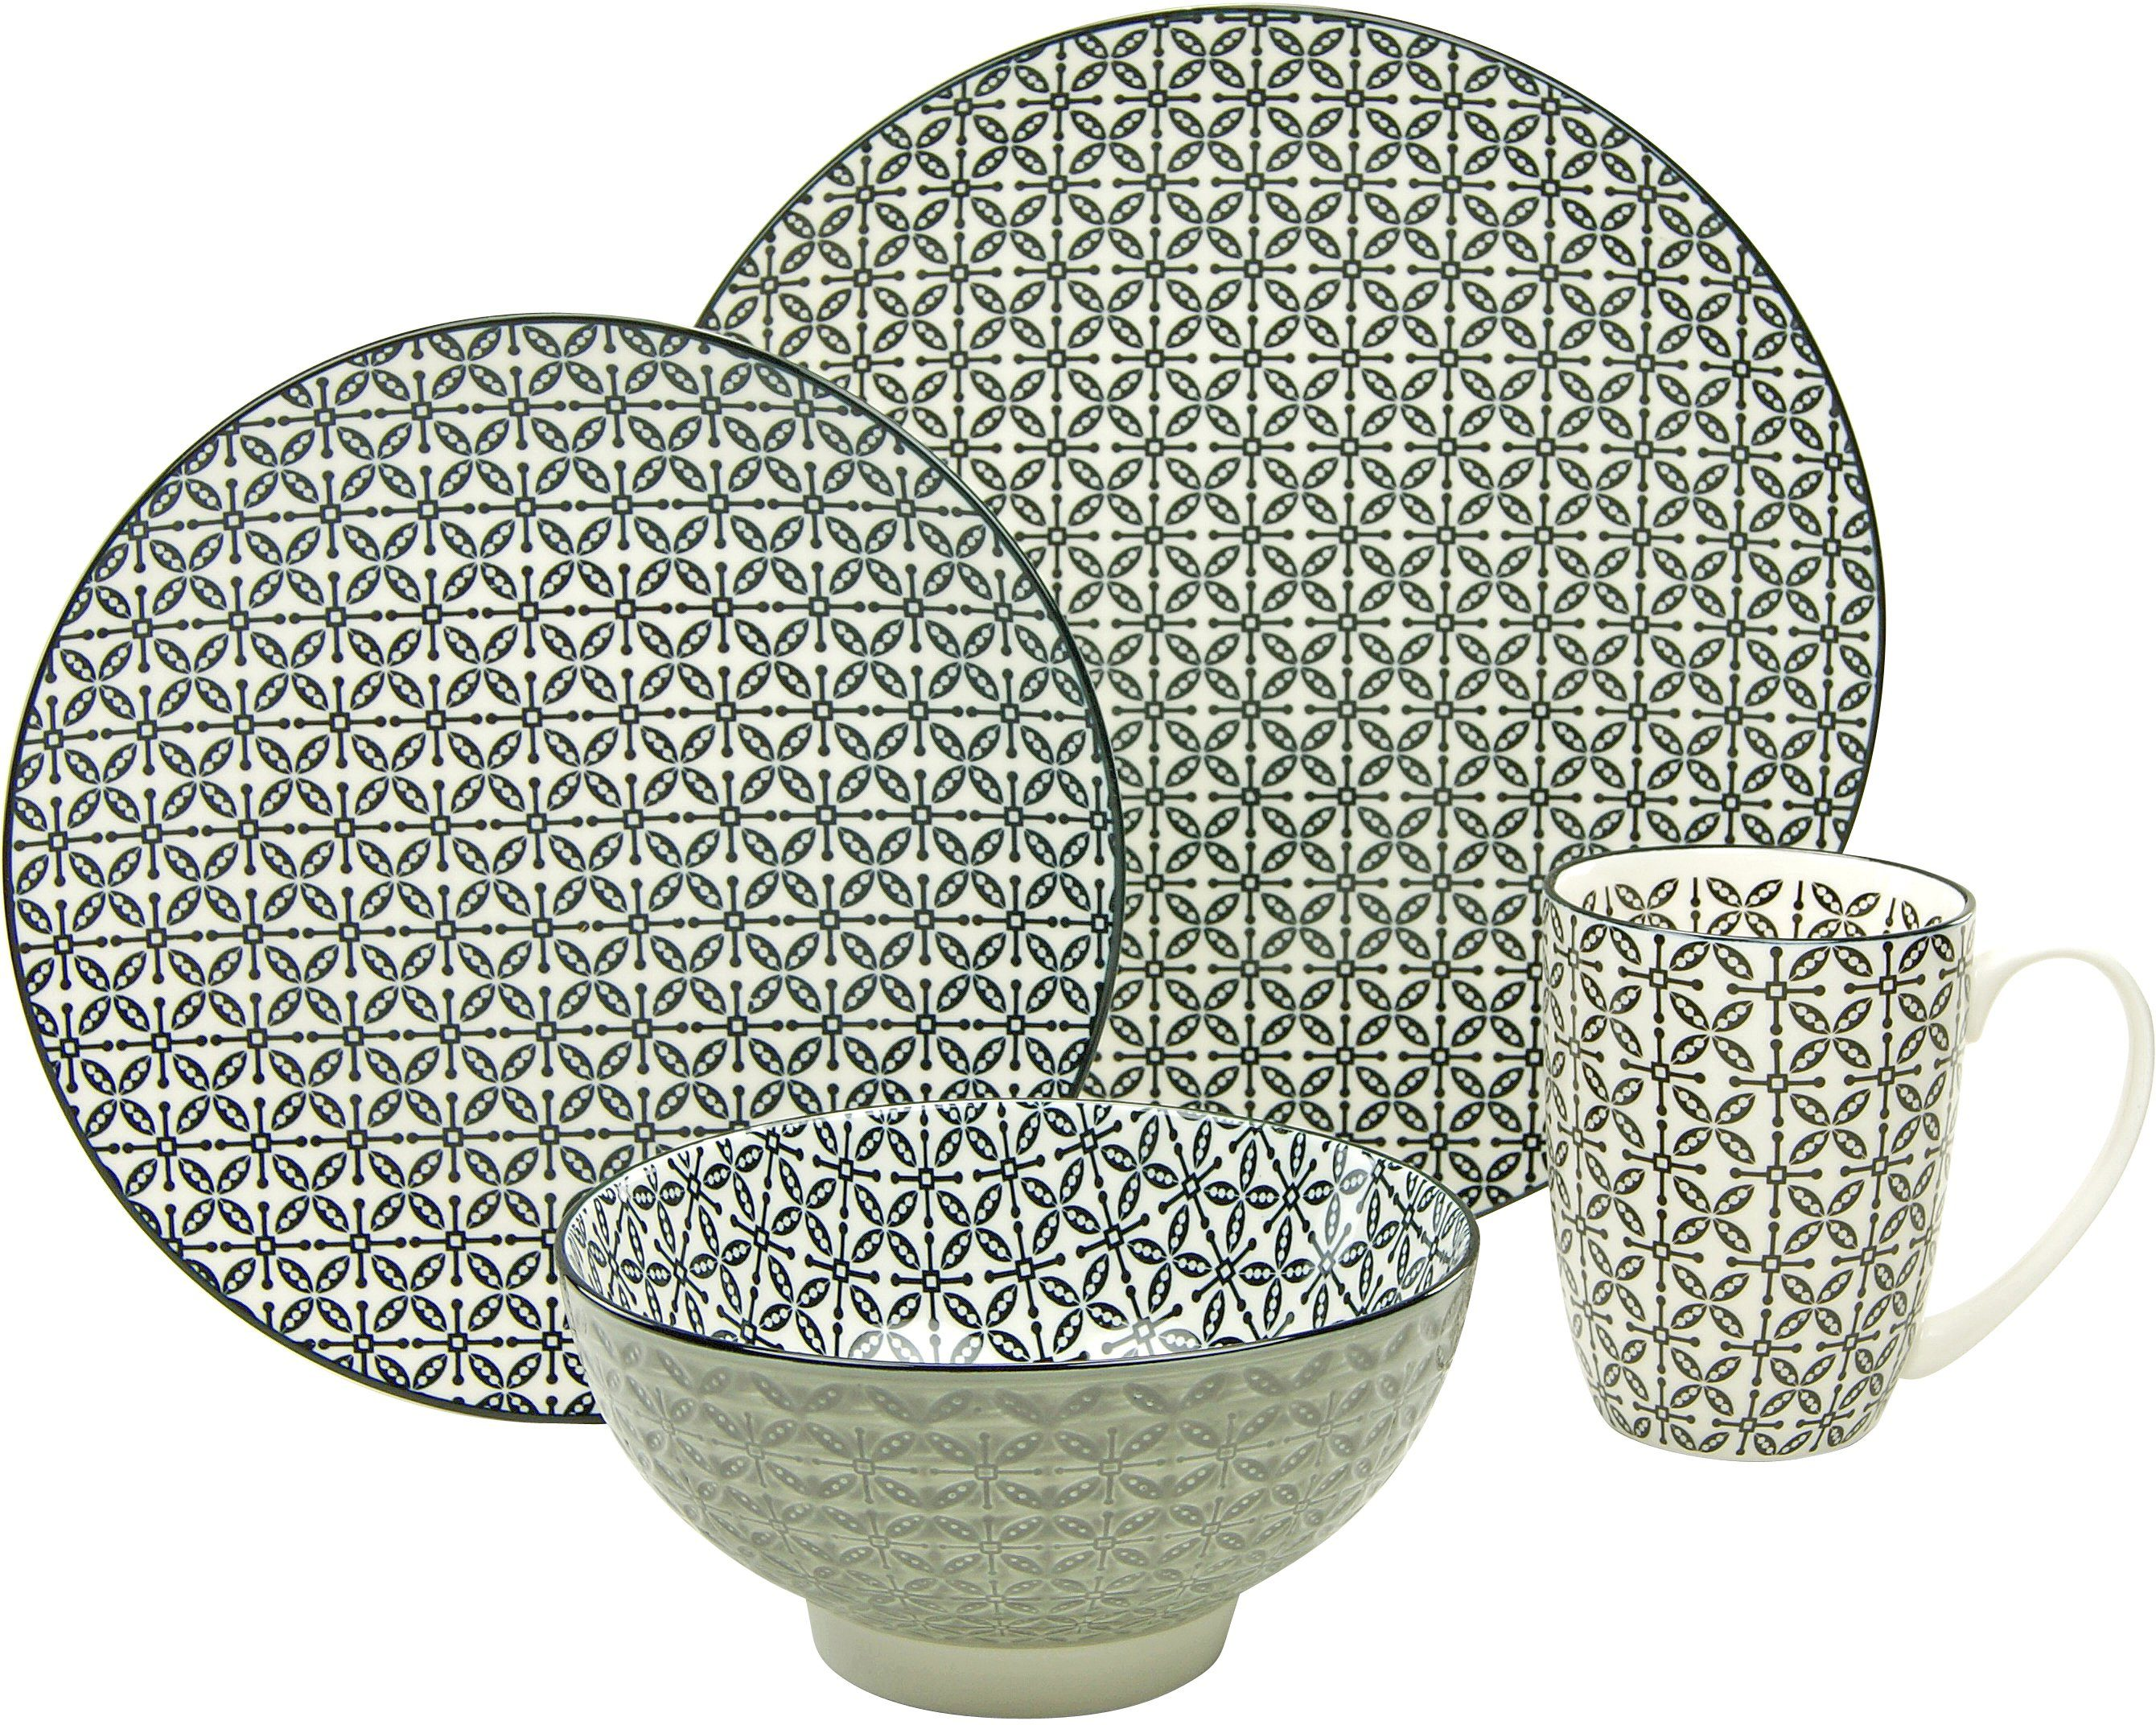 CreaTable Single Geschirr-Set, Steinzeug, 4-teilig, Dekor Cross, »New Style black«